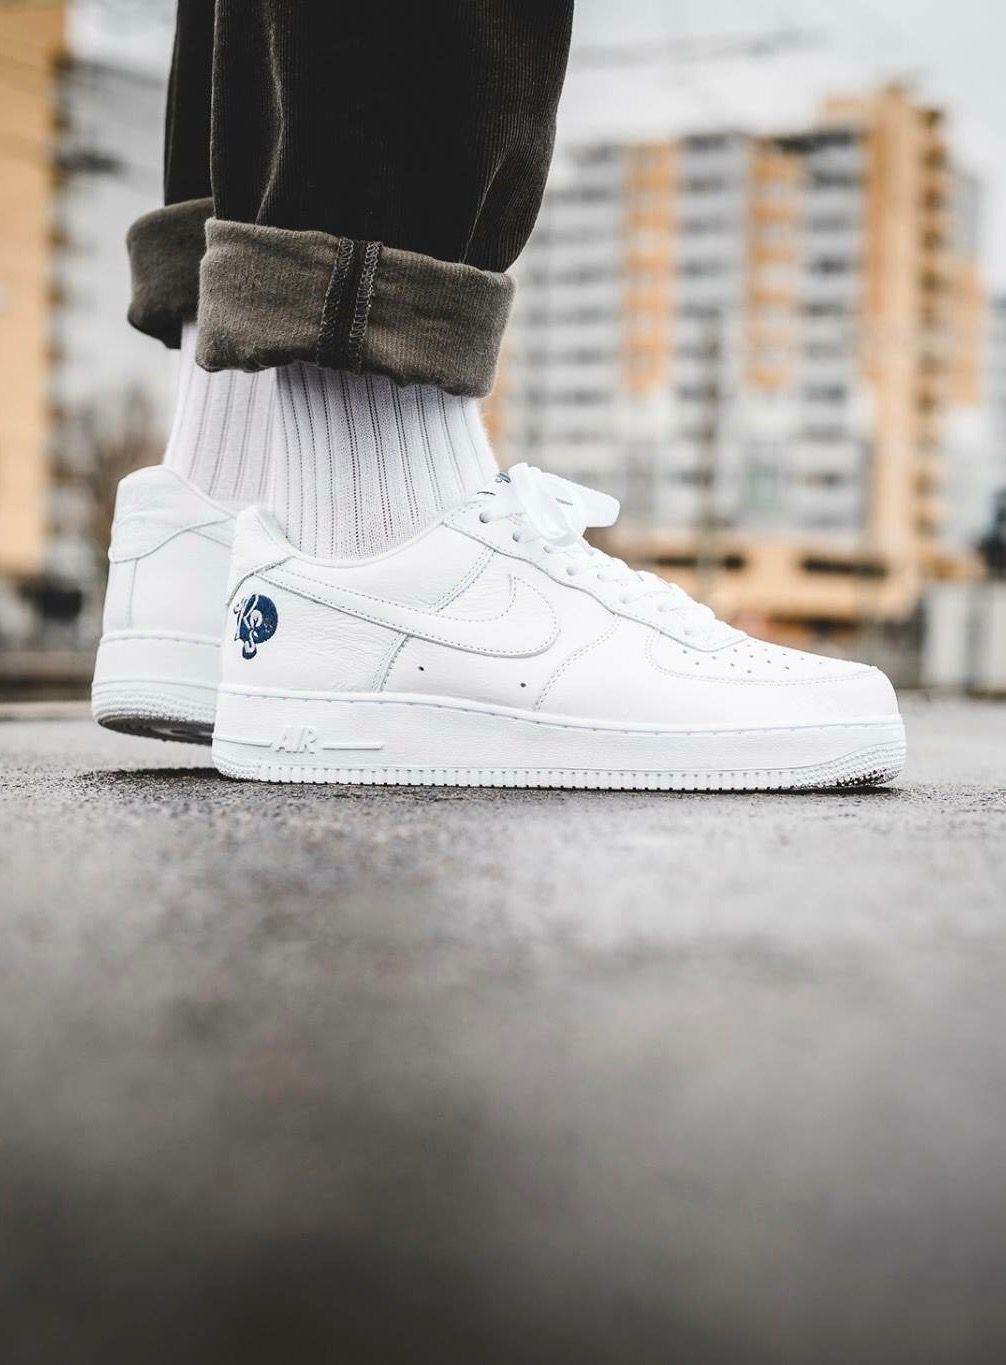 Nike Air Force 1 07 SE Premium 'Pale Ivory' Release Date